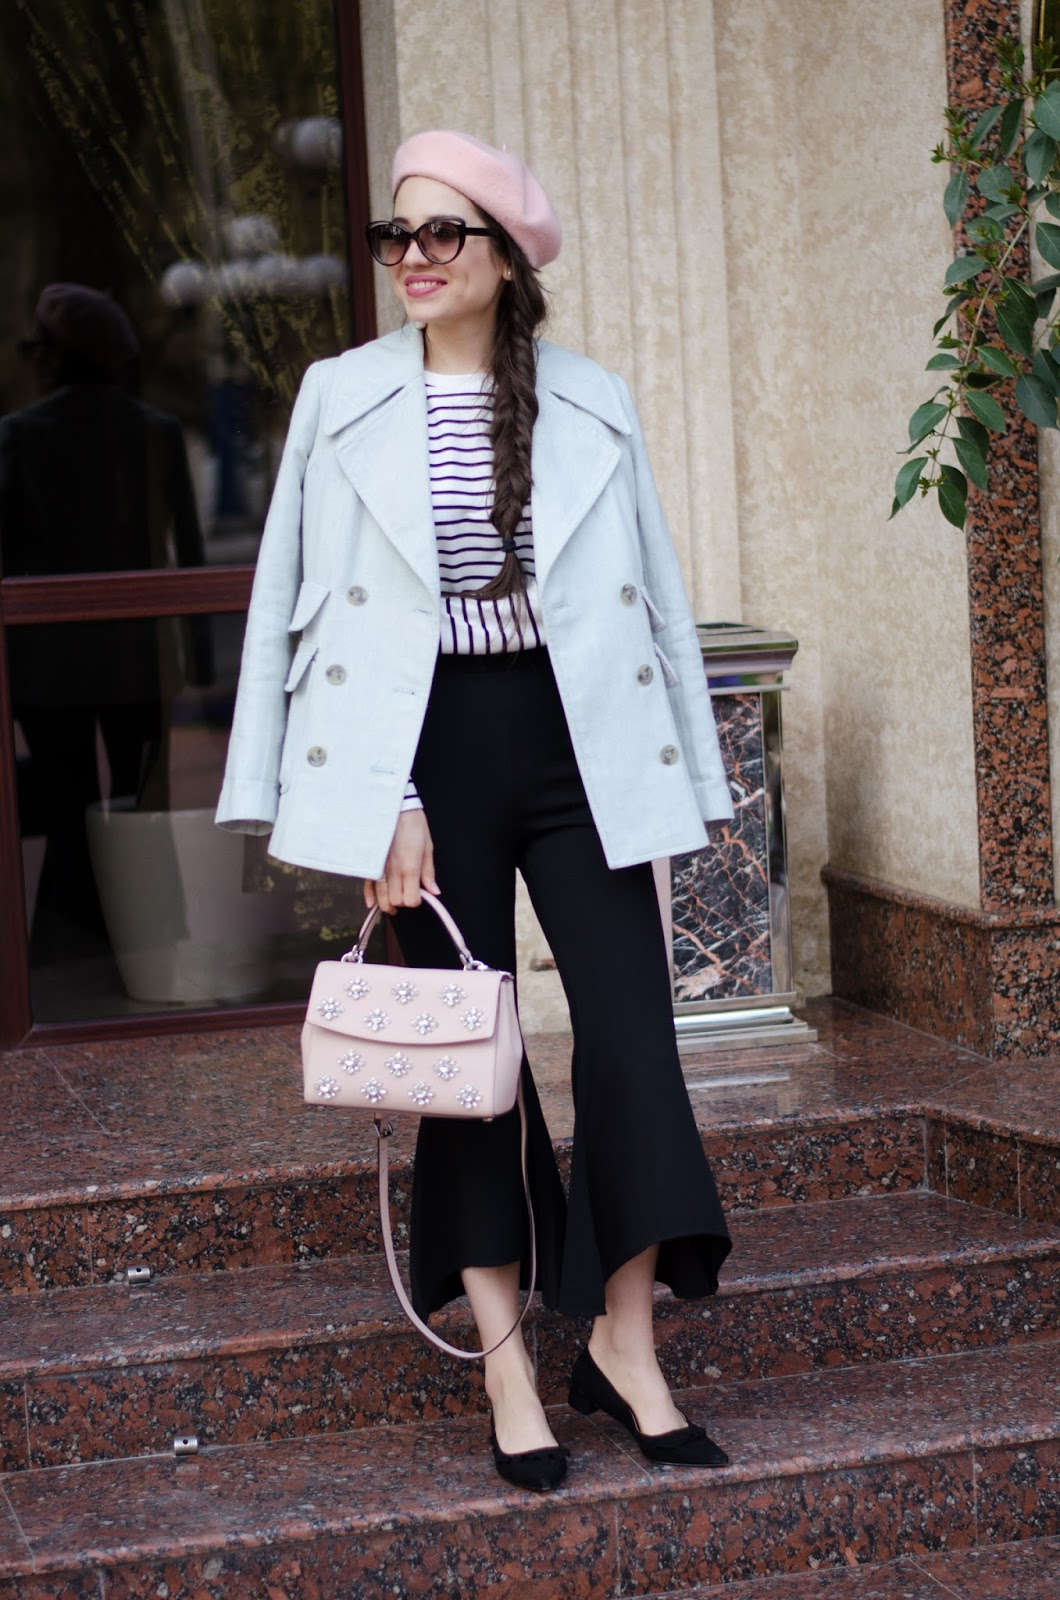 fashion blogger diyorasnotes diyora beta paris style striped top ruffles pink bag michael kors